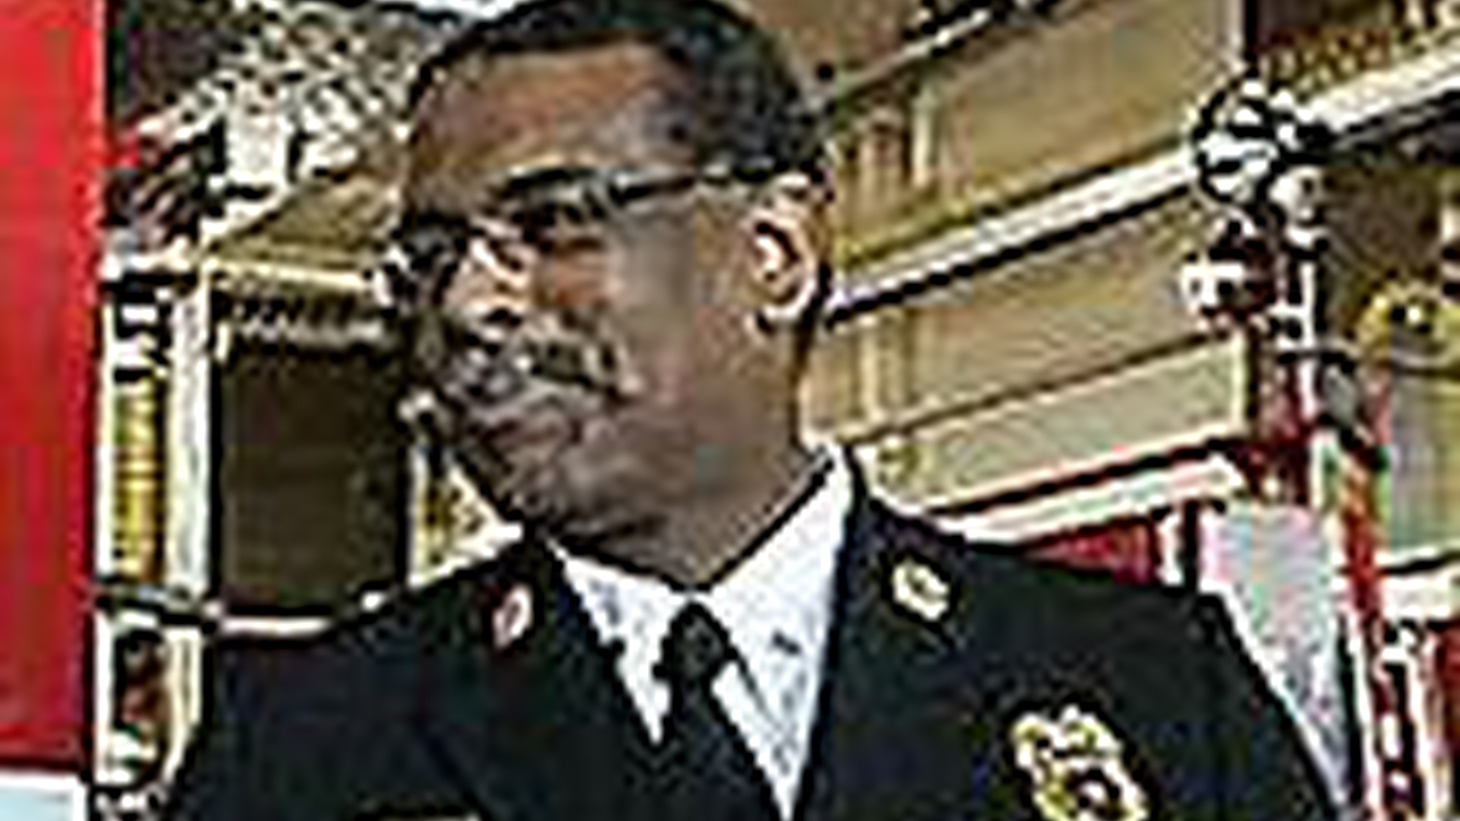 Mayor Villaraigosa has named African American Douglas Barry as LA's interim Fire Chief after new controversy about racist hazing of officers by their colleagues. Is it part of the culture or just local fire houses? Will a minority veteran succeed where Caucasian predecessors have failed? Plus, new leadership at the Getty.